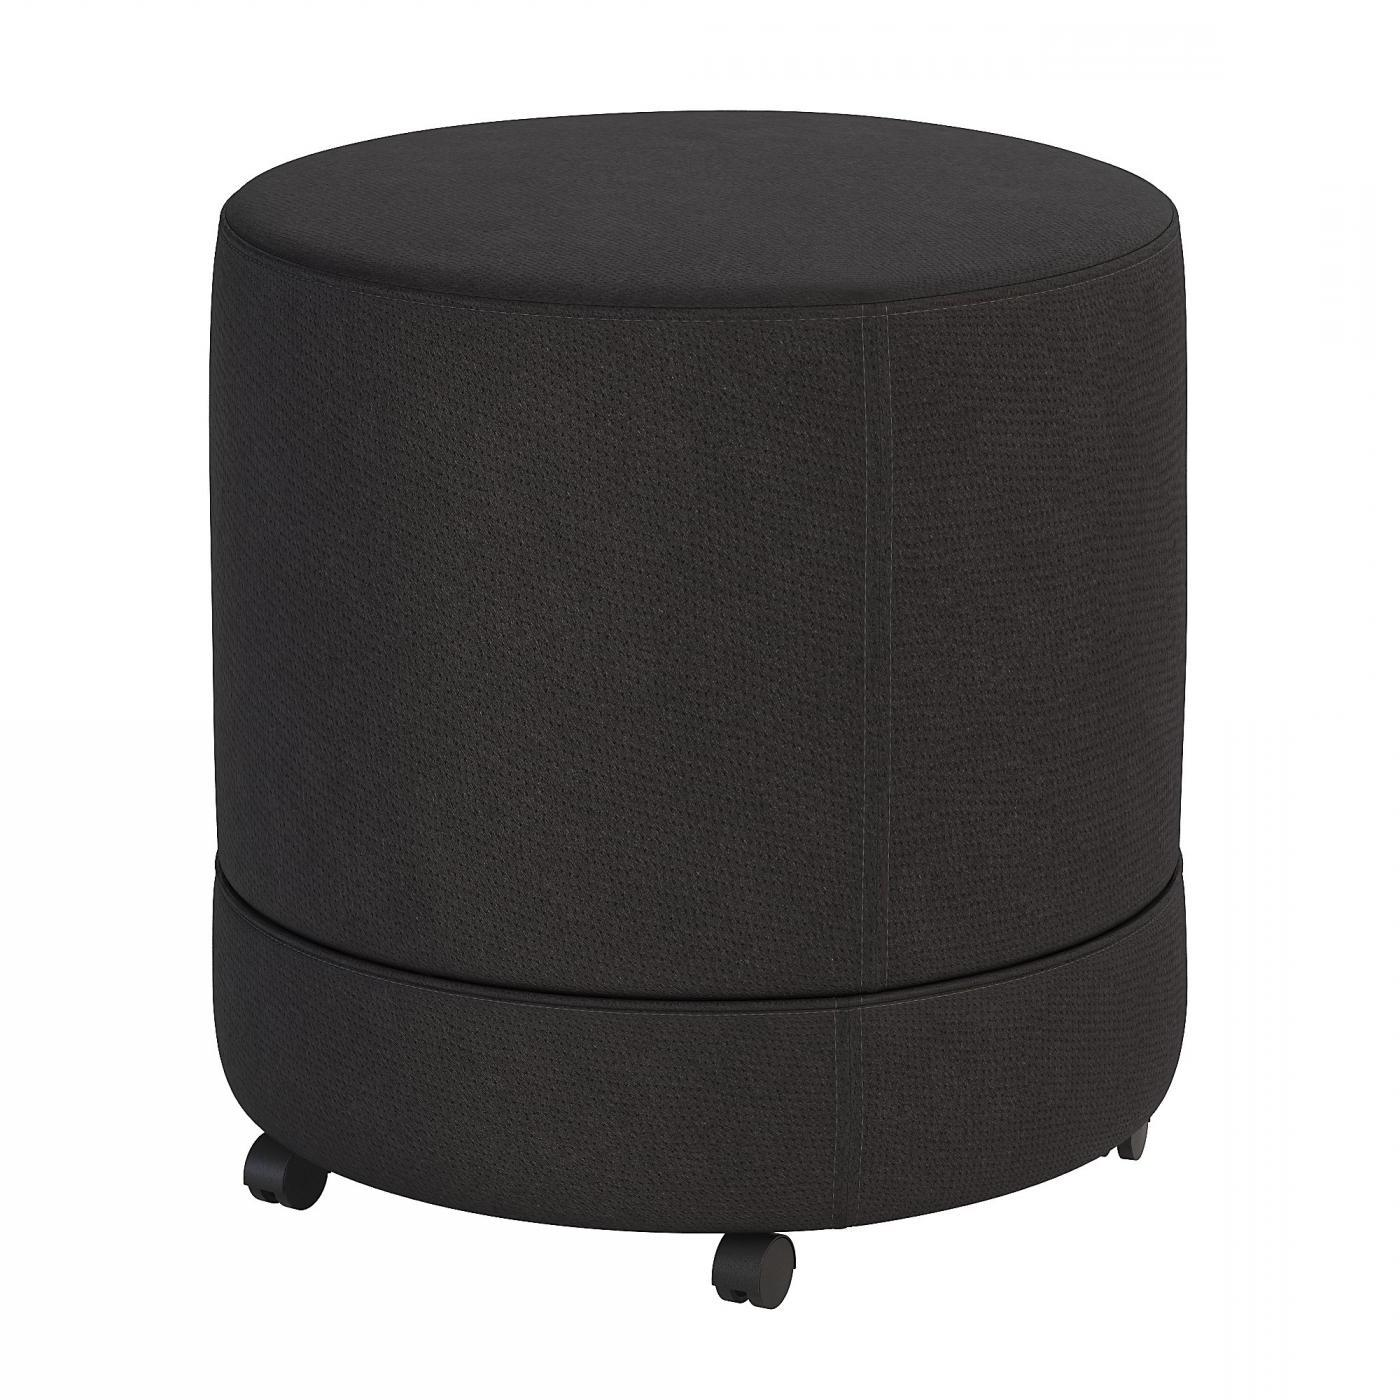 <font color=#c60><b>BUSH BUSINESS FURNITURE THRIVE MOBILE POD SEAT. FREE SHIPPING</font></b> </font></b>